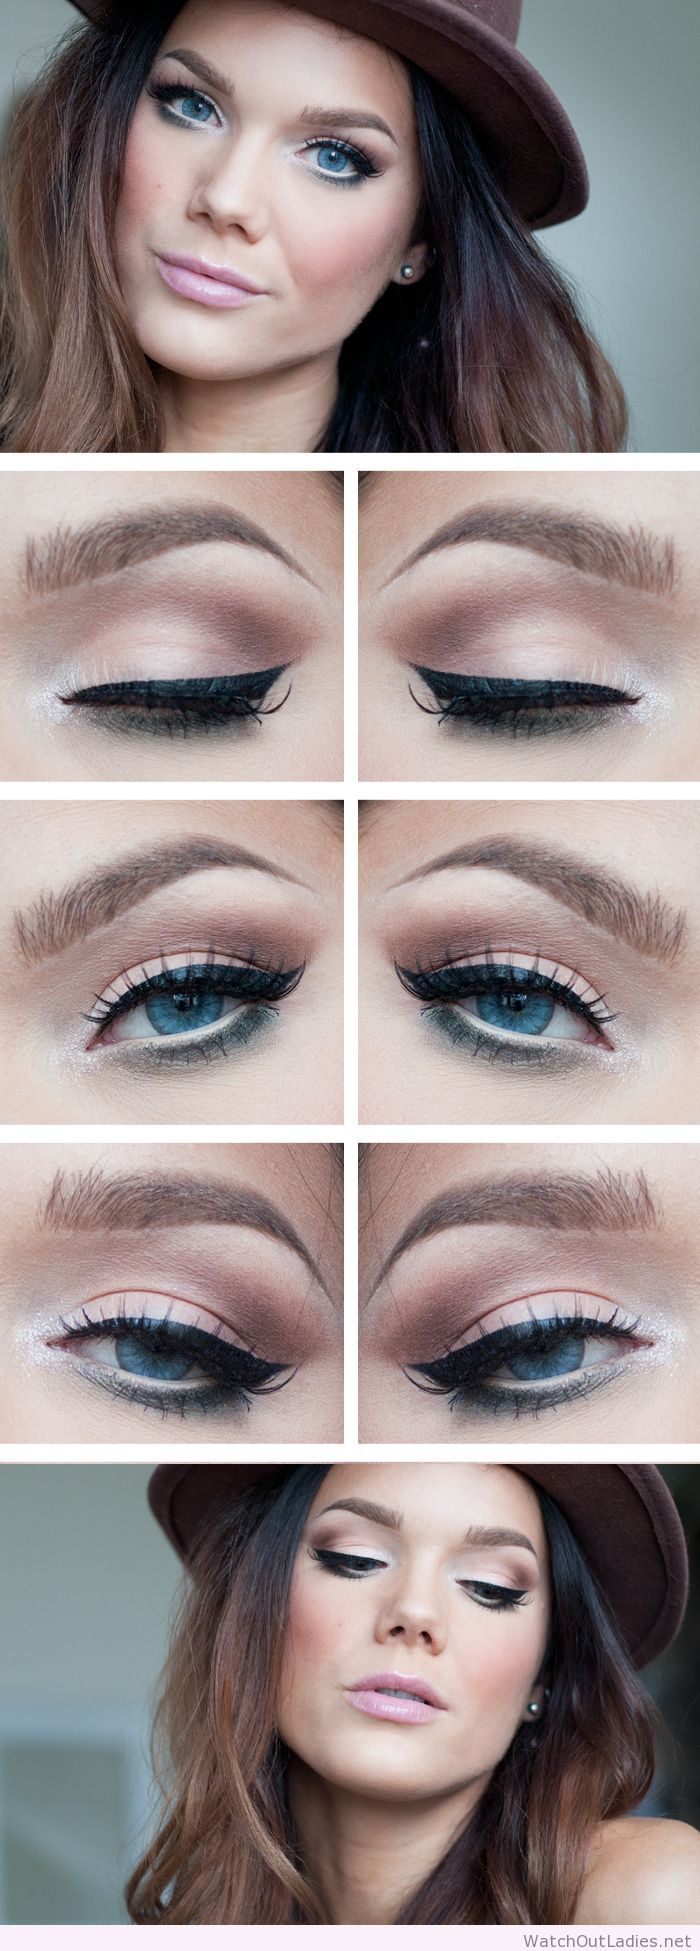 Linda Hallberg natural eye makeup with black